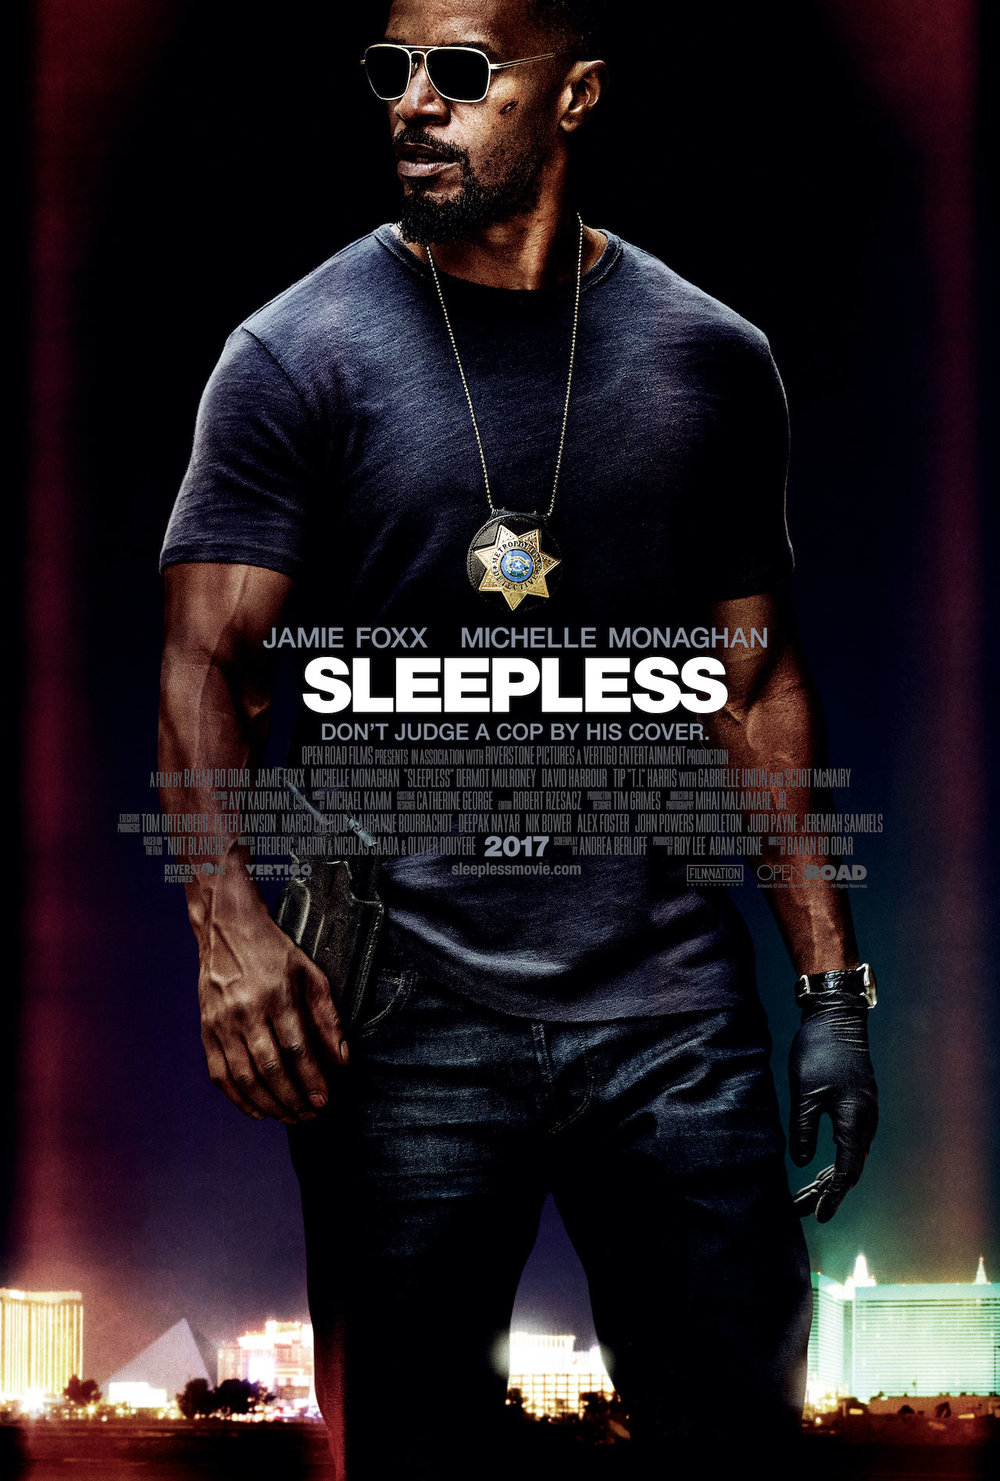 sleepless_poster_final.jpg